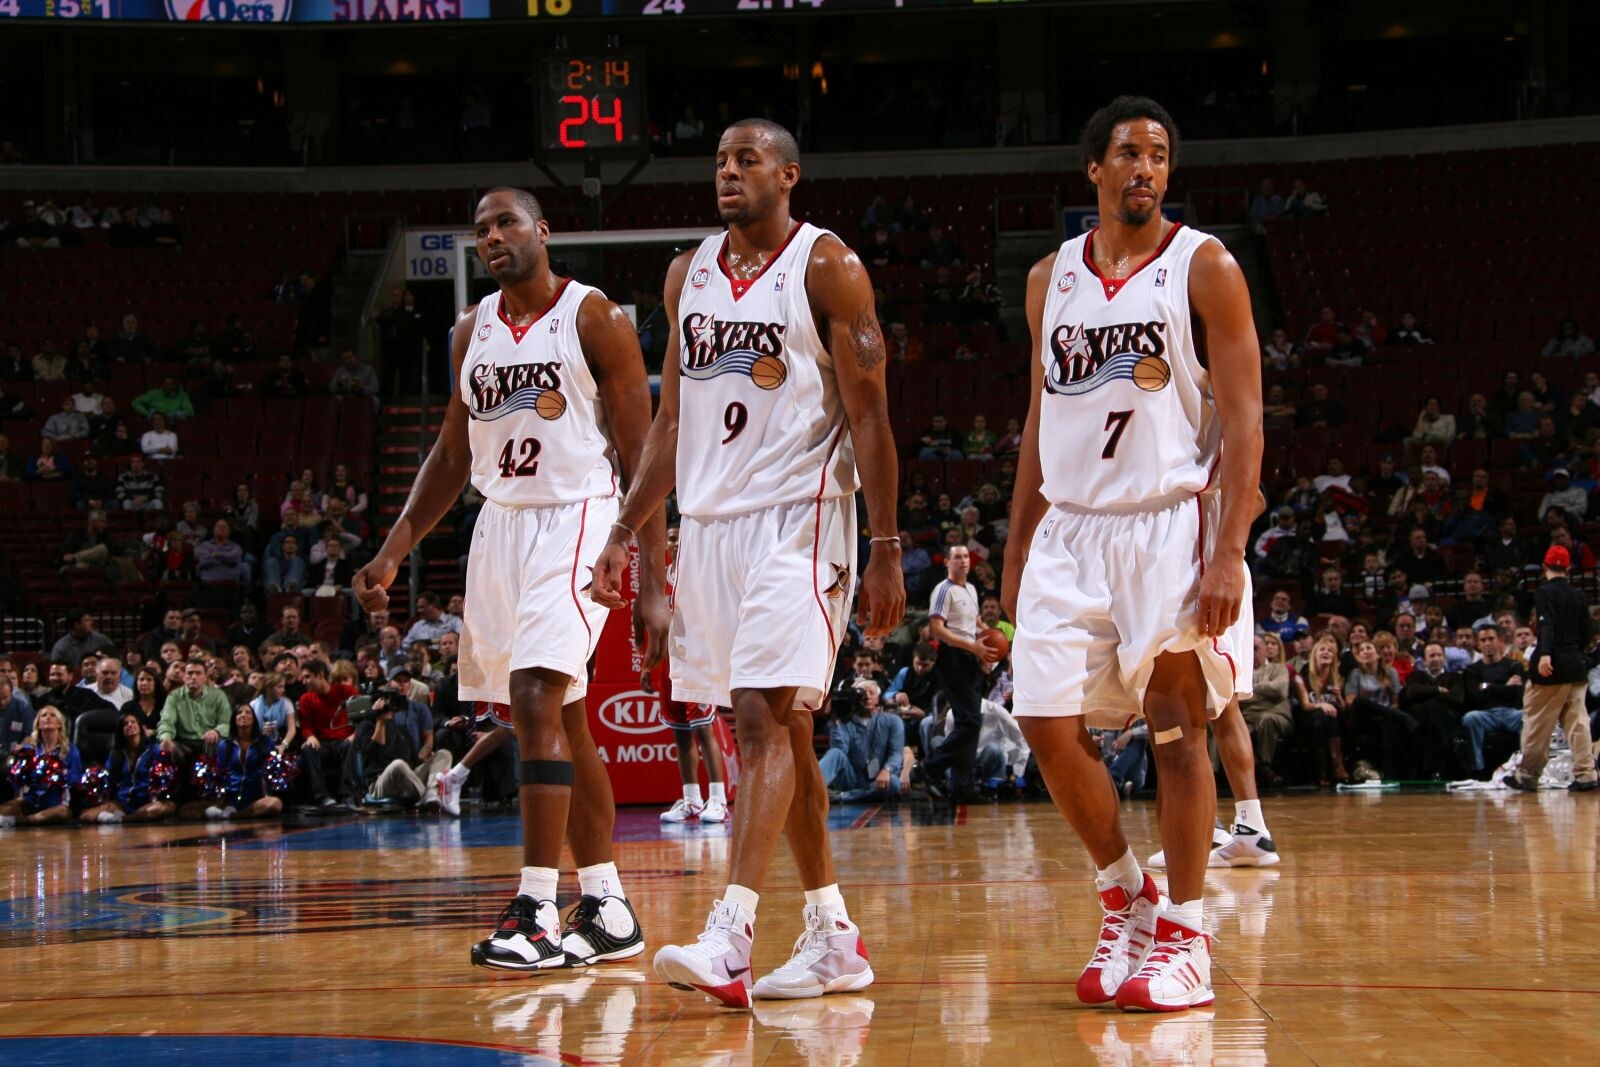 Philadelphia 76ers: Elton Brand and Andre Miller eligible for Hall of Fame